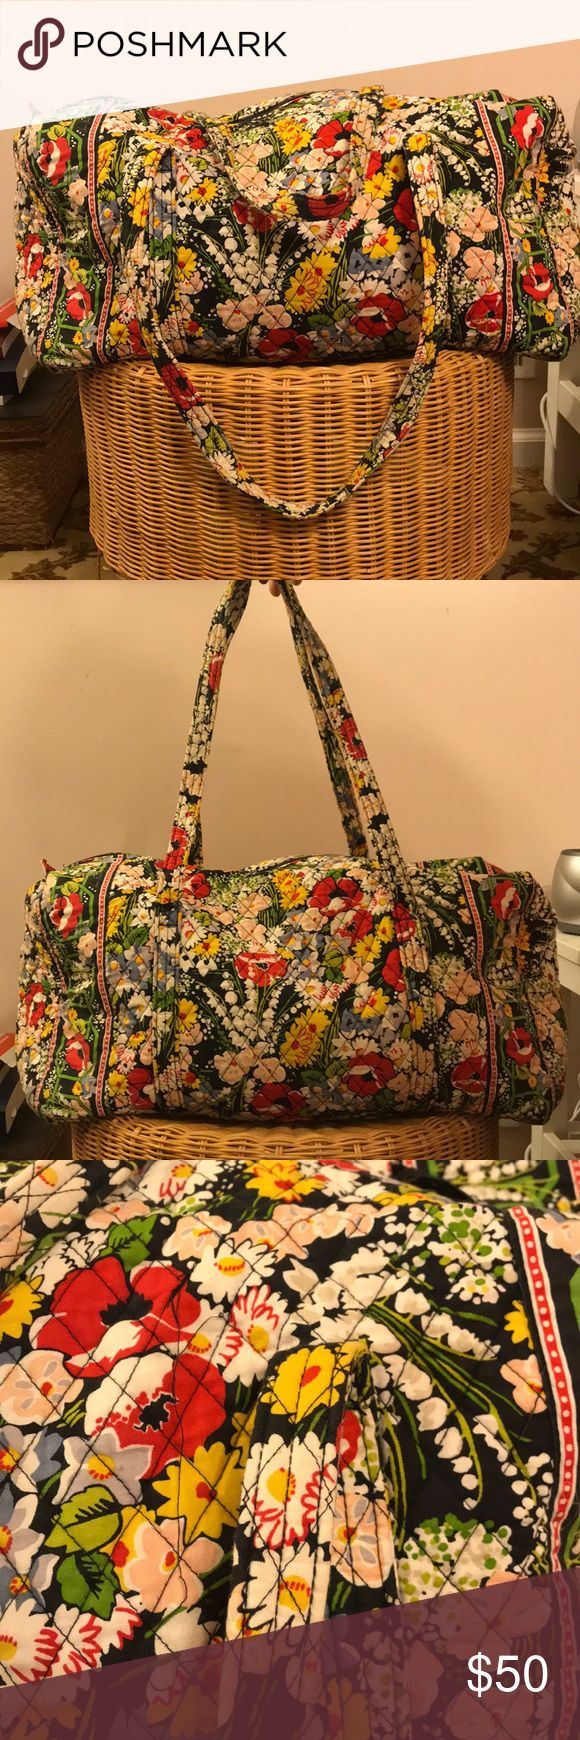 Vera Bradley Weekender Bag Big traveling bag great for airports and weekends away. Definitely loved, but clean and looks amazing. Bright colors def add style to your weekend away or going through the airport Vera Bradley Bags Travel Bags